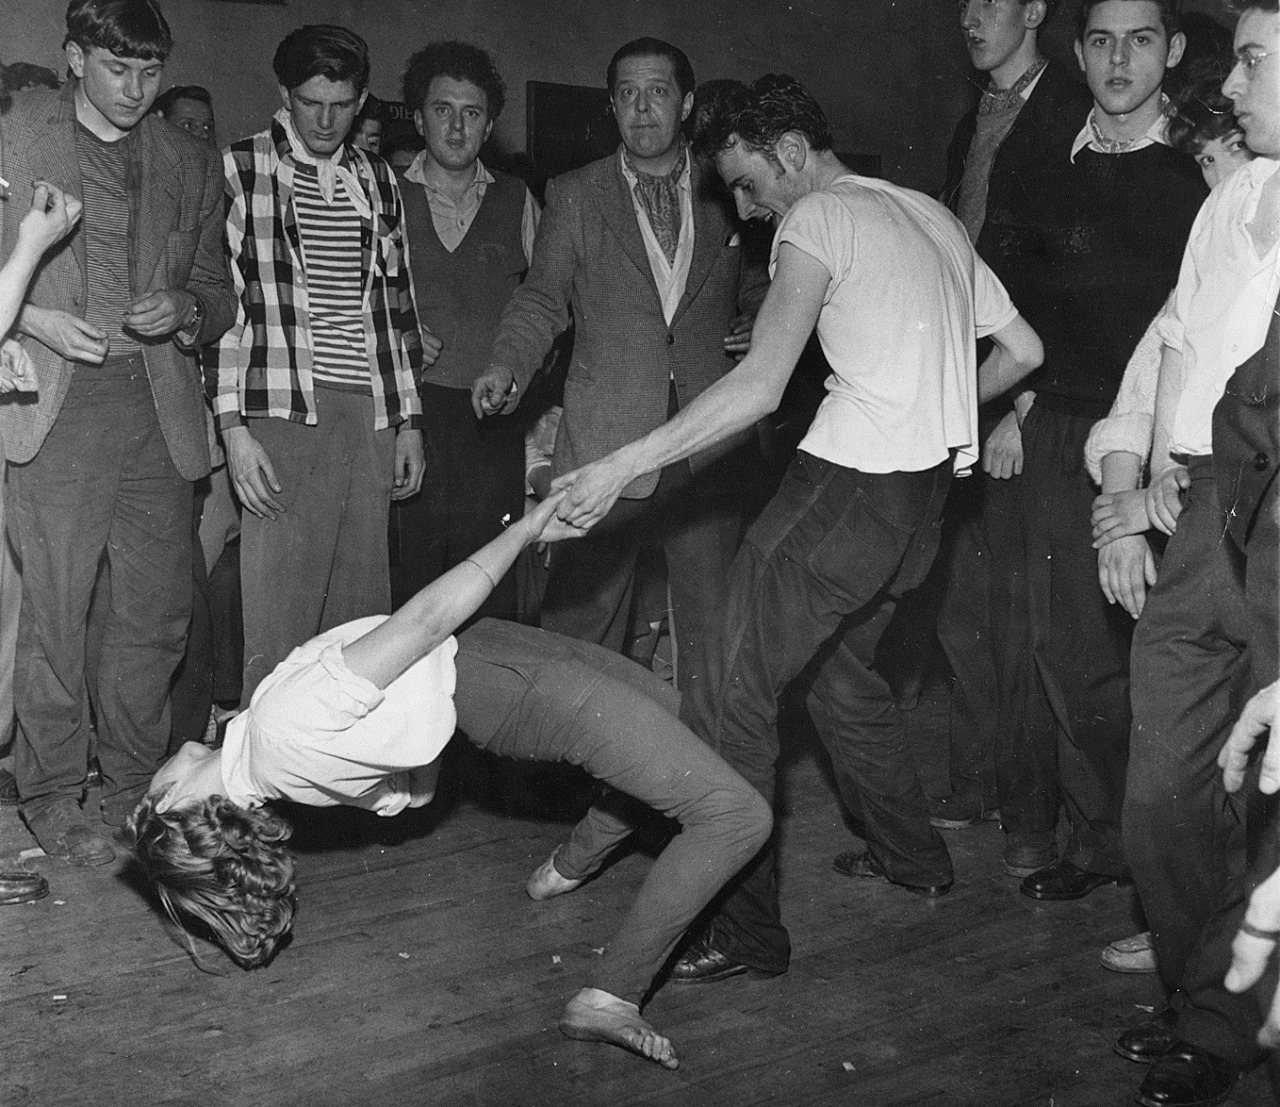 goldenlocket: Dancing at a London jazz club, 1950s.